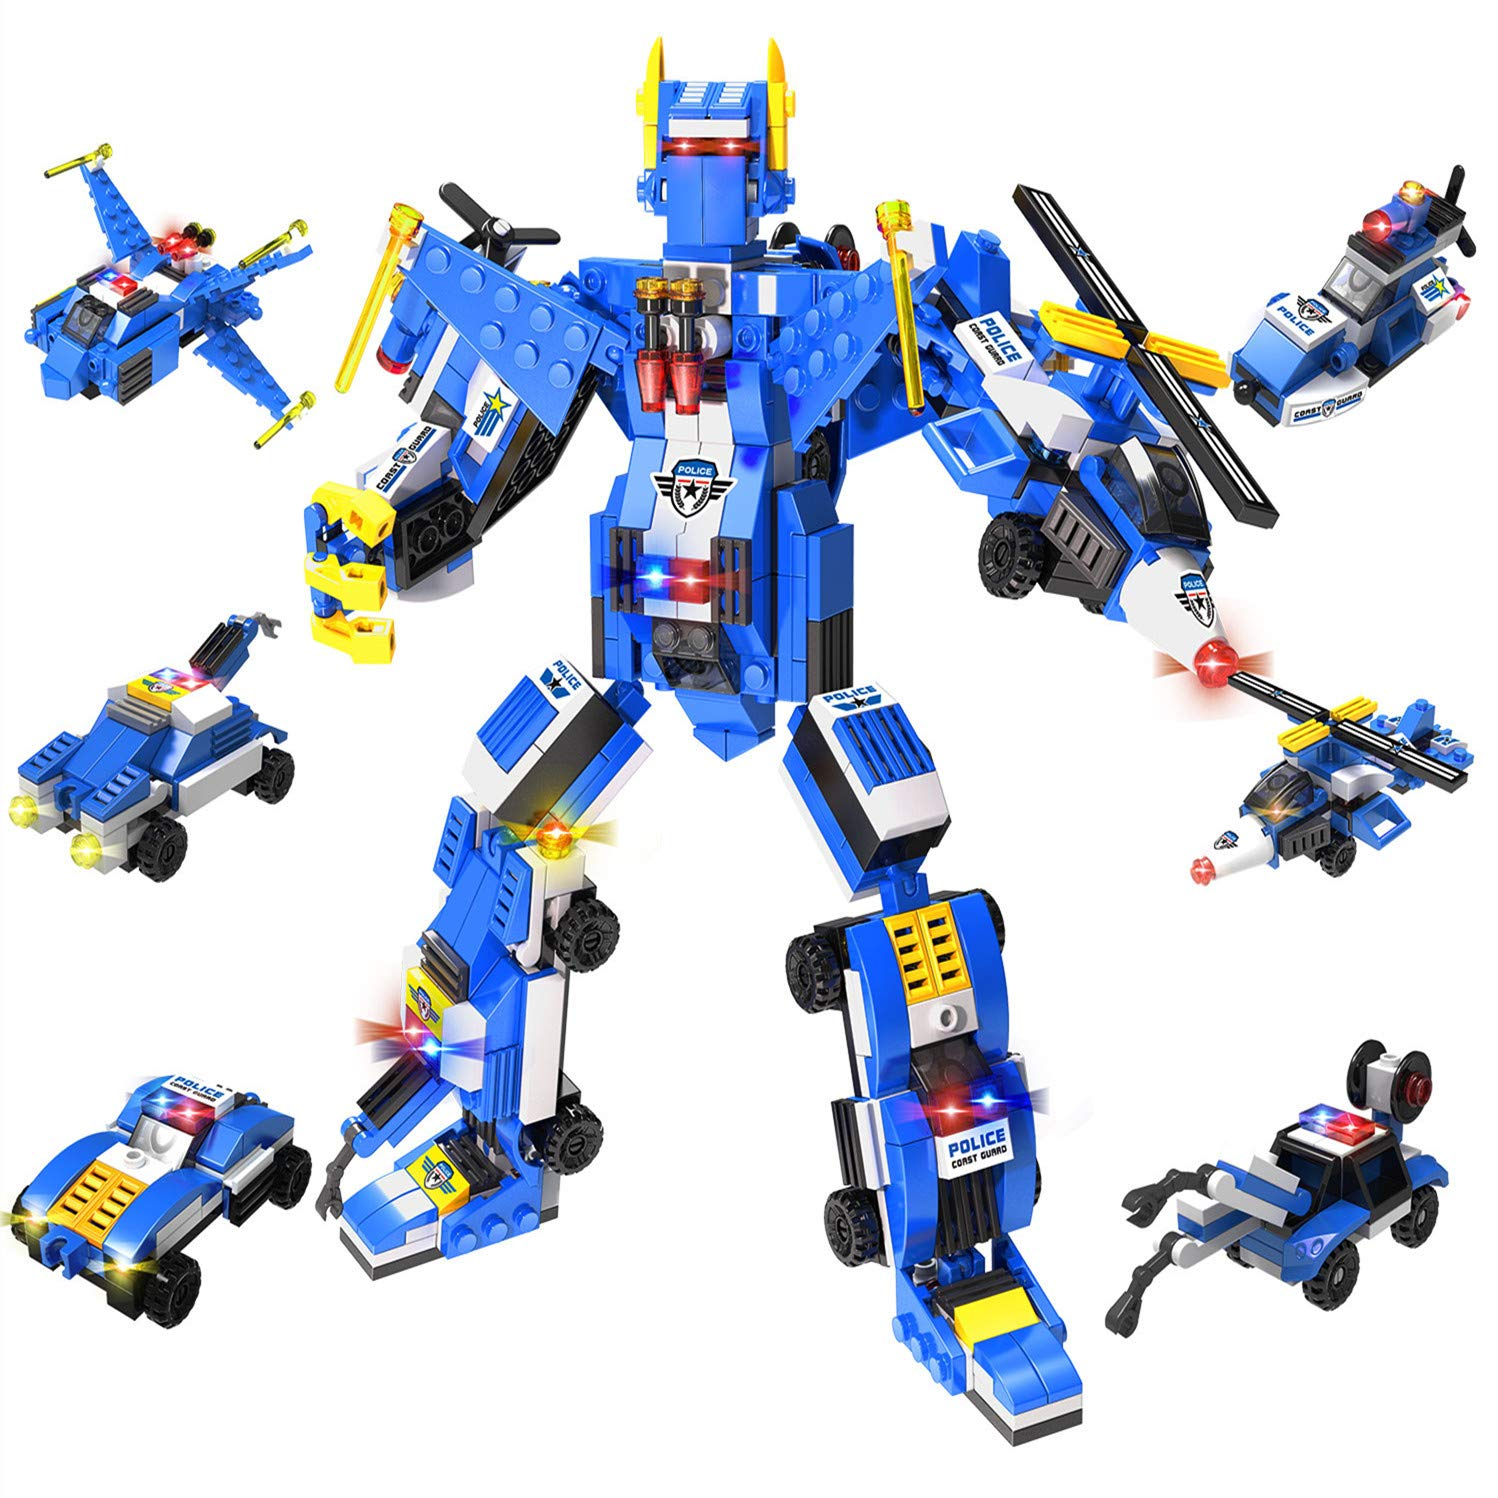 6-in-1 Robot STEM Toy Engineering Building Blocks Building Bricks Toy Kit, Transforming Construction Building Toys for Boys 6 Years Old or Older Tight Fit and Compatible with All Major Brands